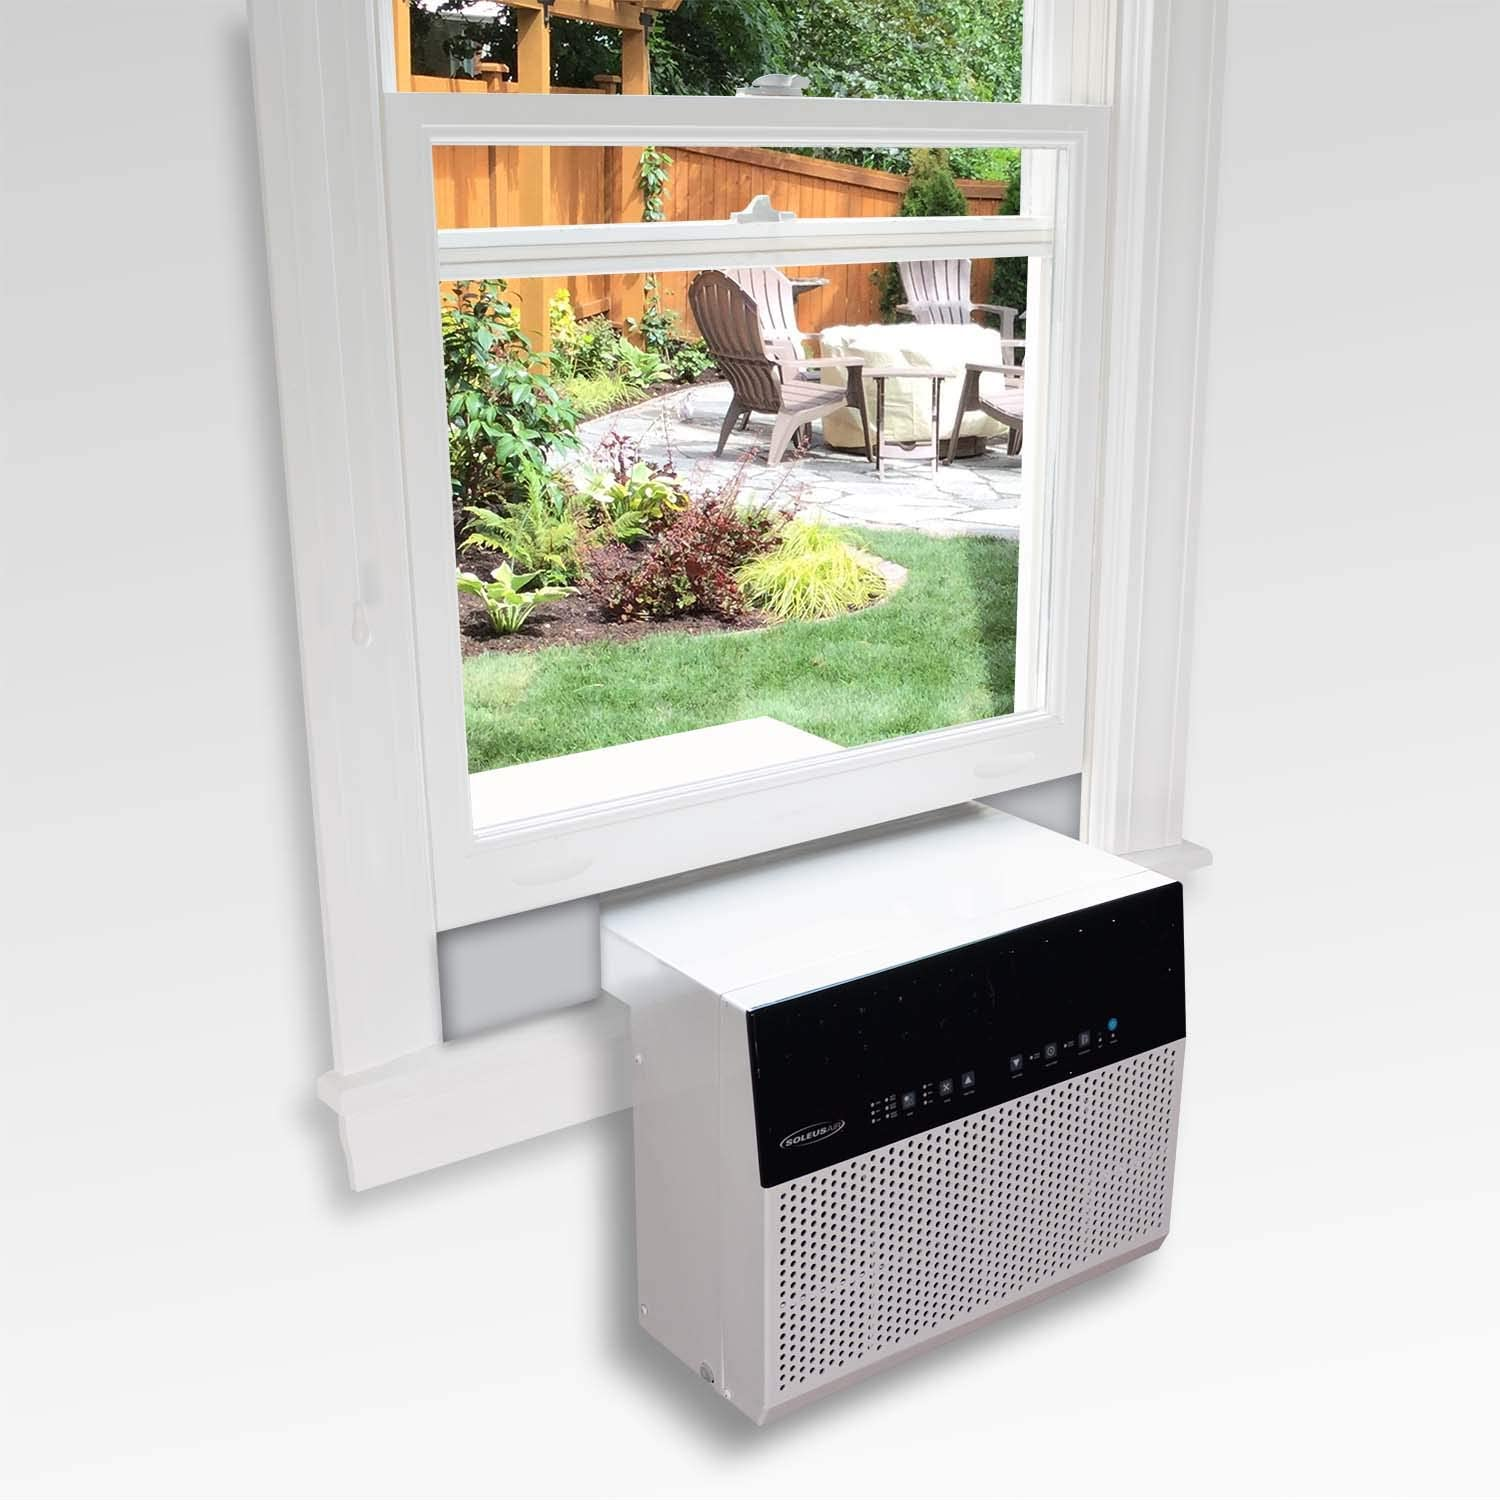 Soleus Air Exclusive 6,000 BTU Energy Star First Ever Over The Sill Air Conditioner Putting it in a Class of its Own for Safety and Whisper Quiet, Along with Keeping Your Window View